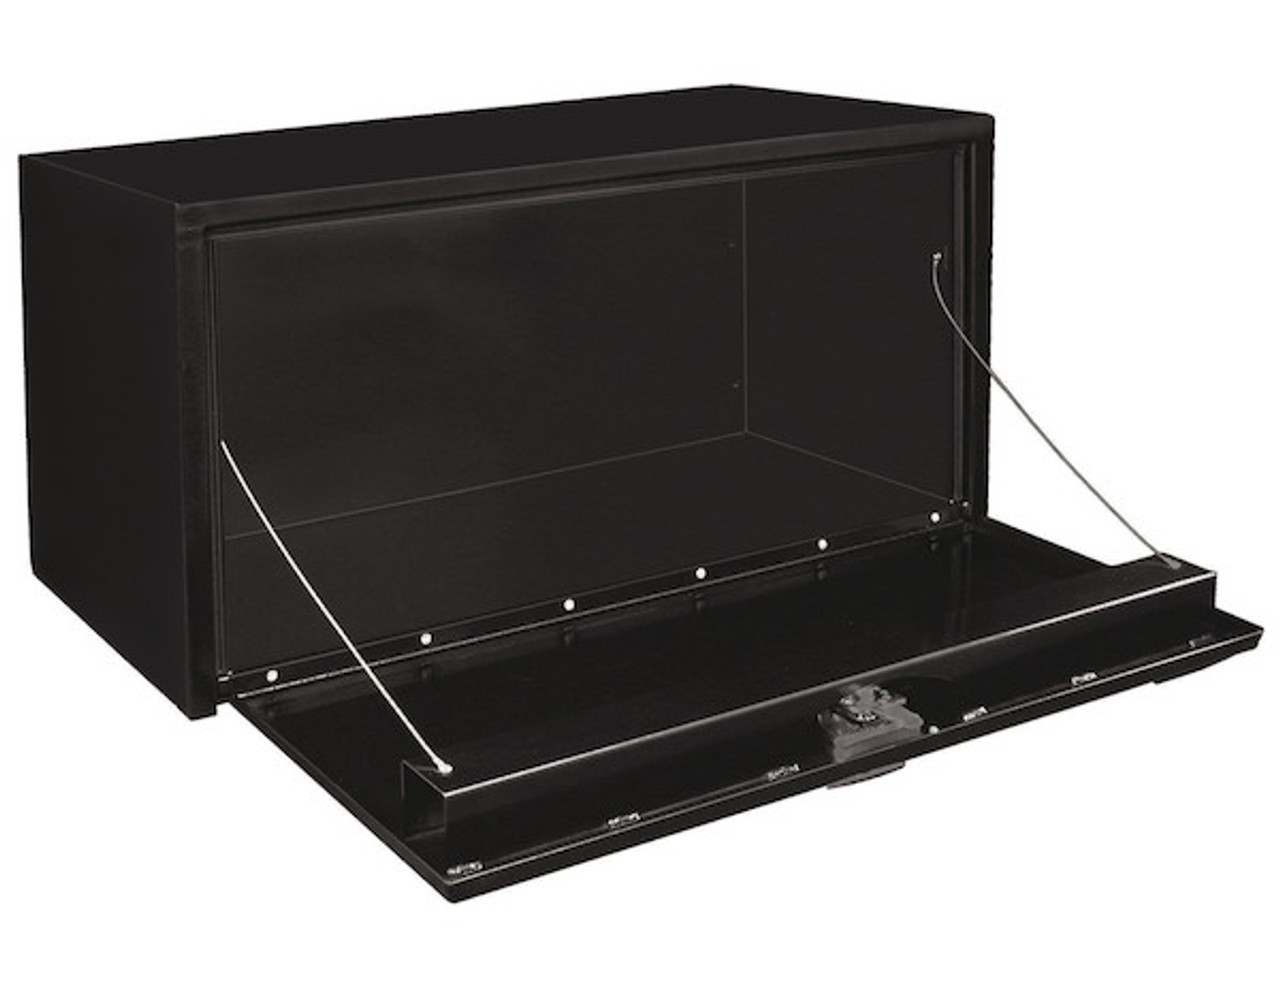 "1702295 BUYERS PRODUCTS BLACK STEEL UNDERBODY TRUCK TOOLBOX WITH T-LATCH 18""HX18""DX18""W"